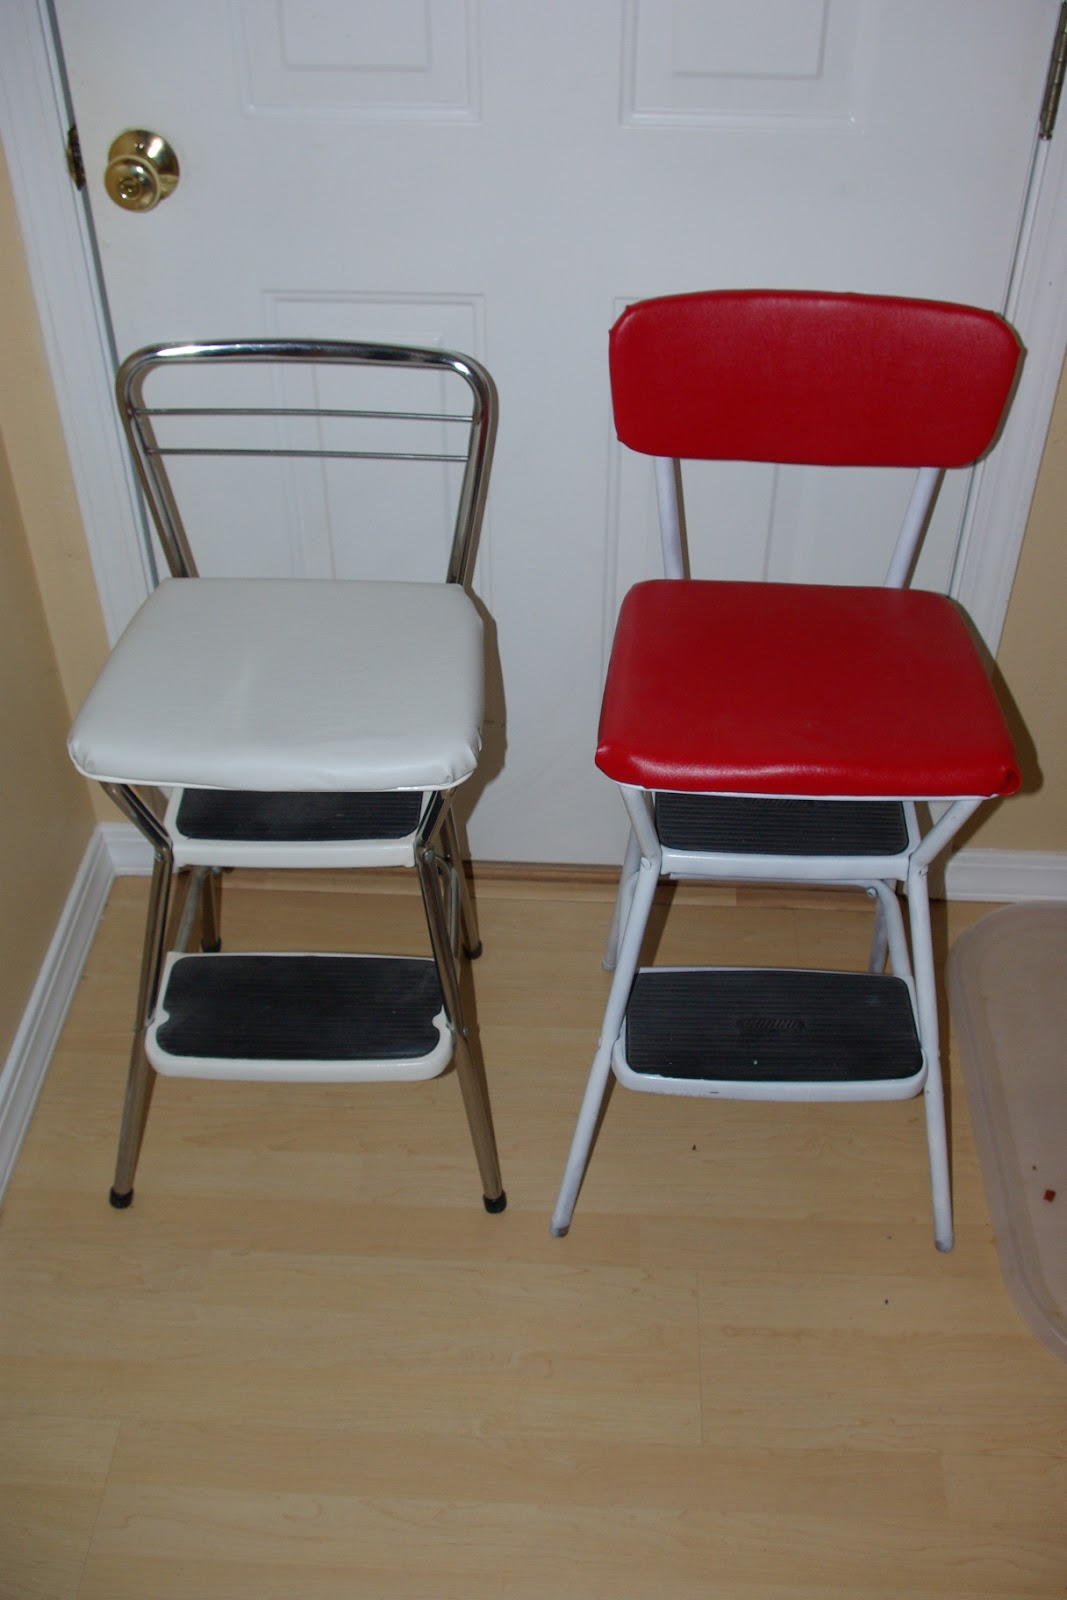 Reclaimed Rustics Mid Century Cosco Step Stools Chairs